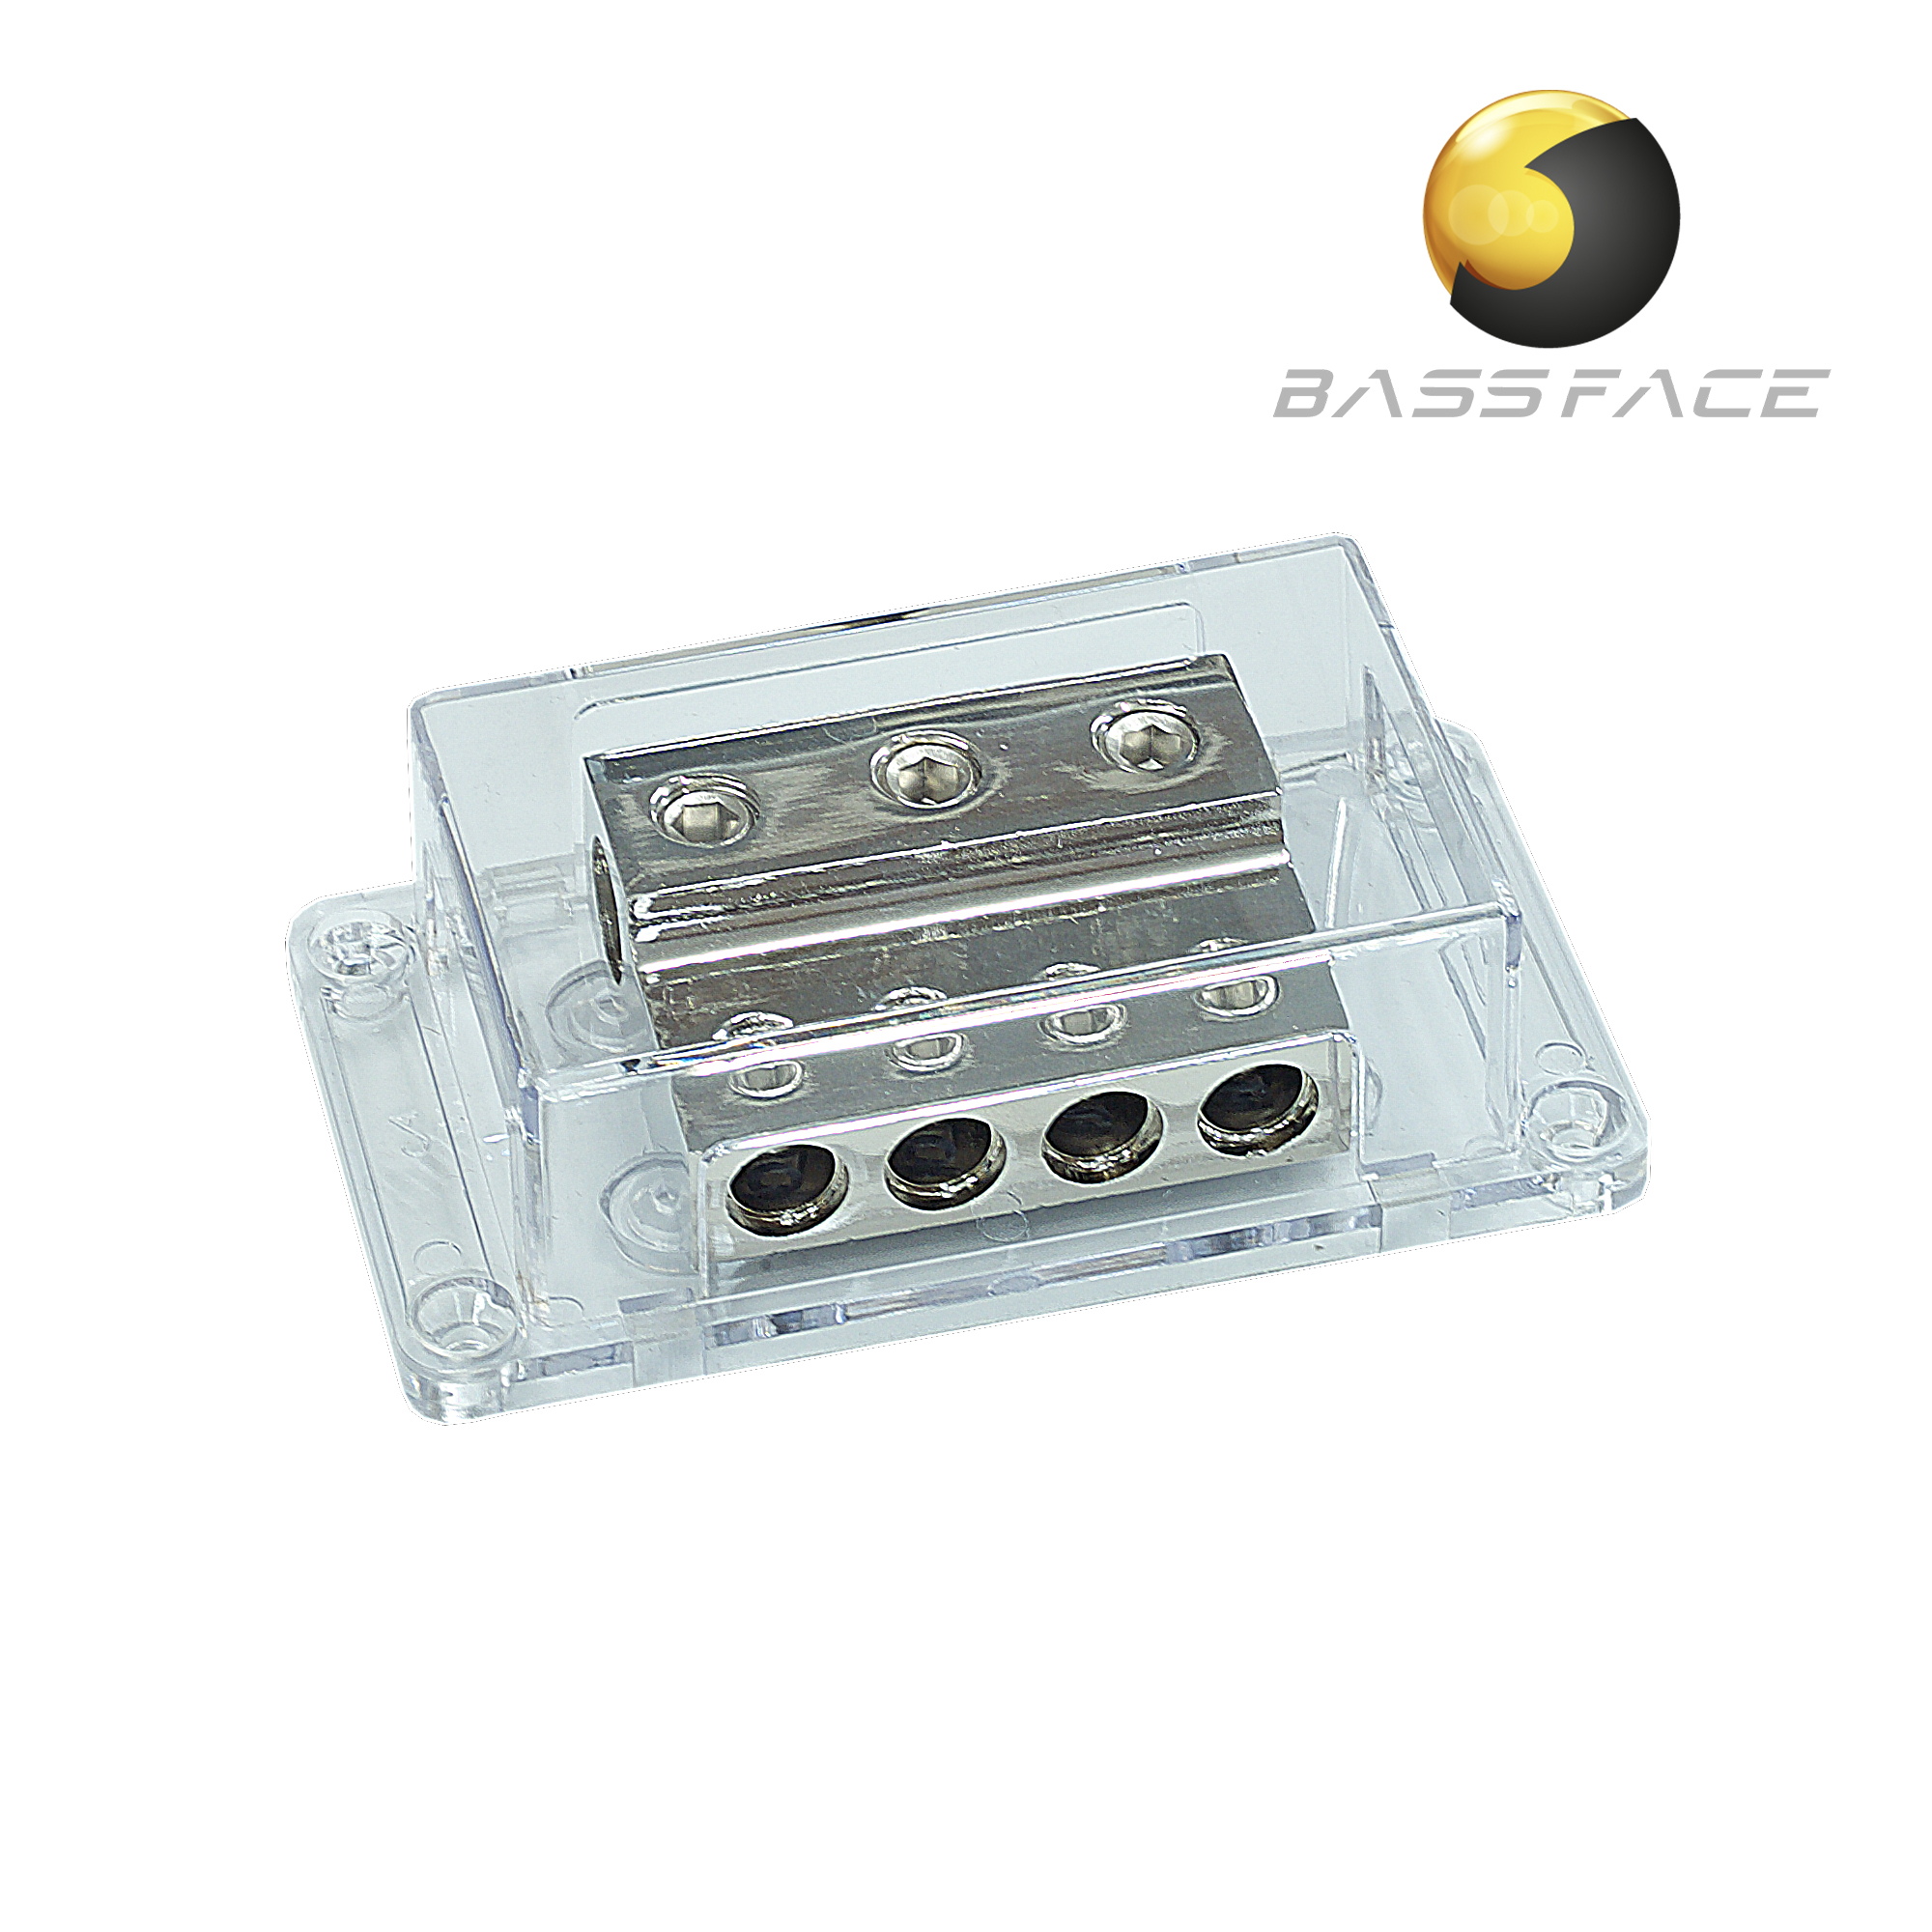 Bassface Car Audio The Specialists Stereo Kit 800w Sub 500w 2 Channel Amplifier Capacitor Wiring Pwd001 Unfused Power Distribution Block 1x0awg 2x2awg 4x4awg